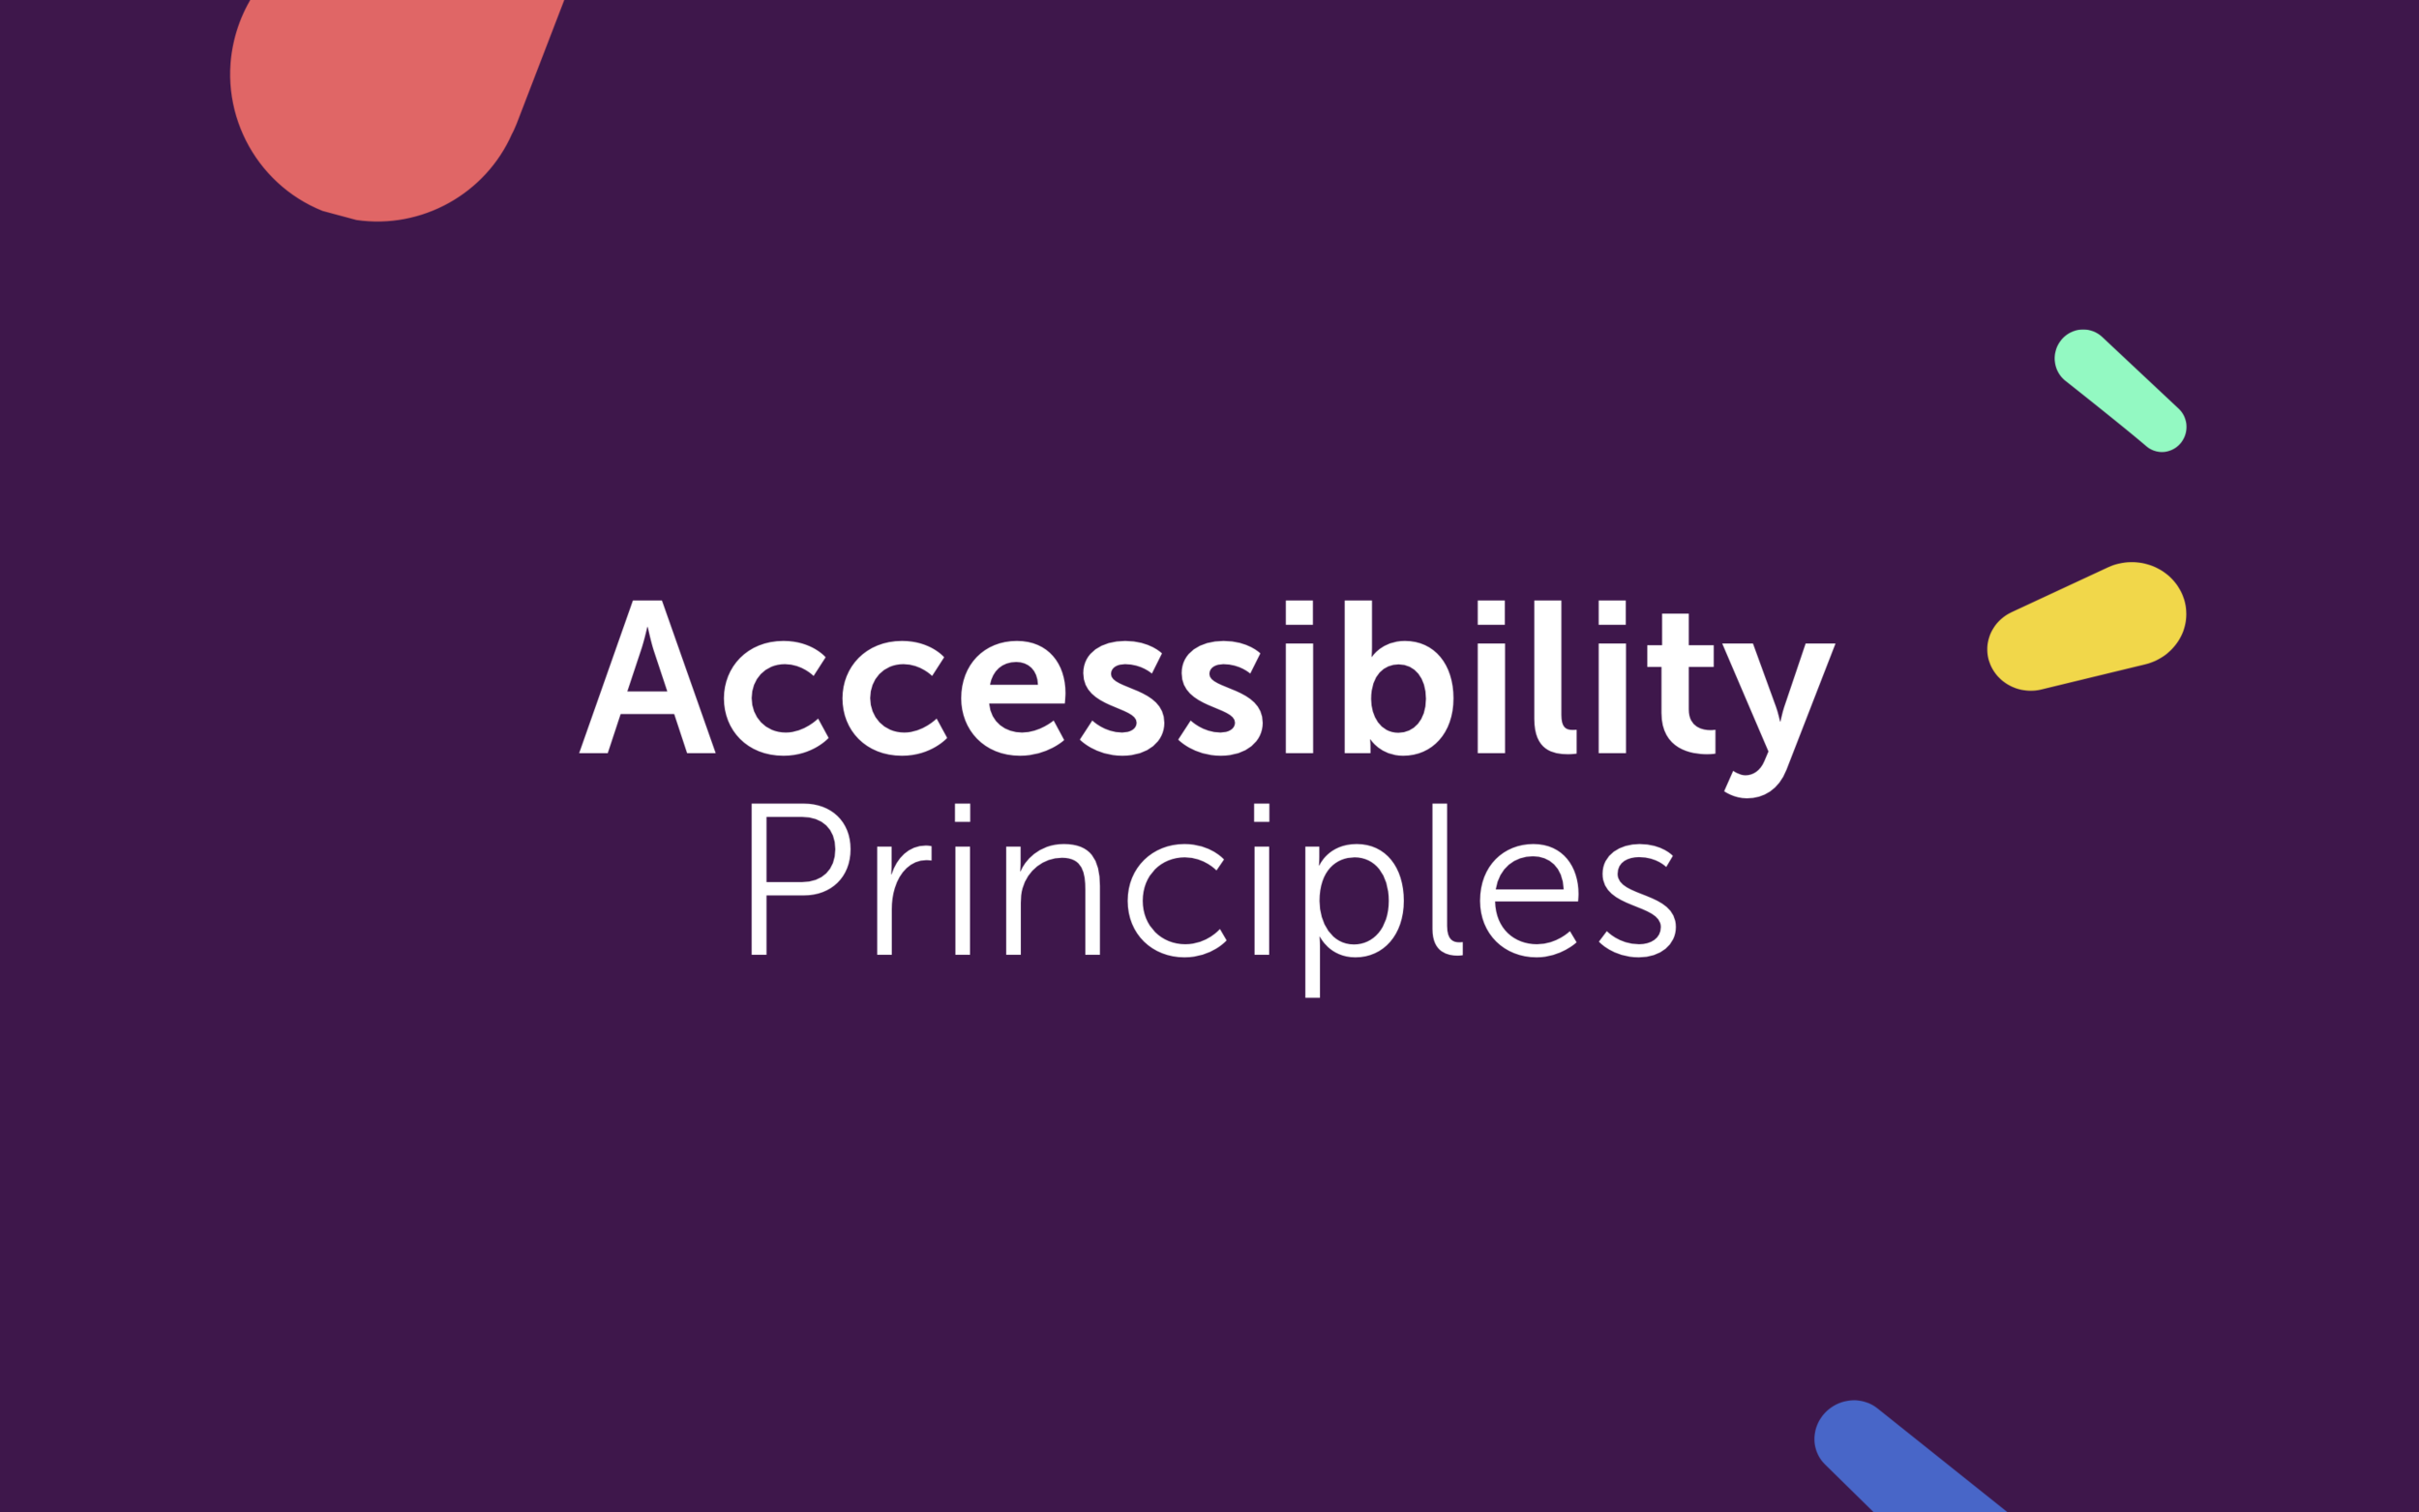 accessibility principles 0.1.png